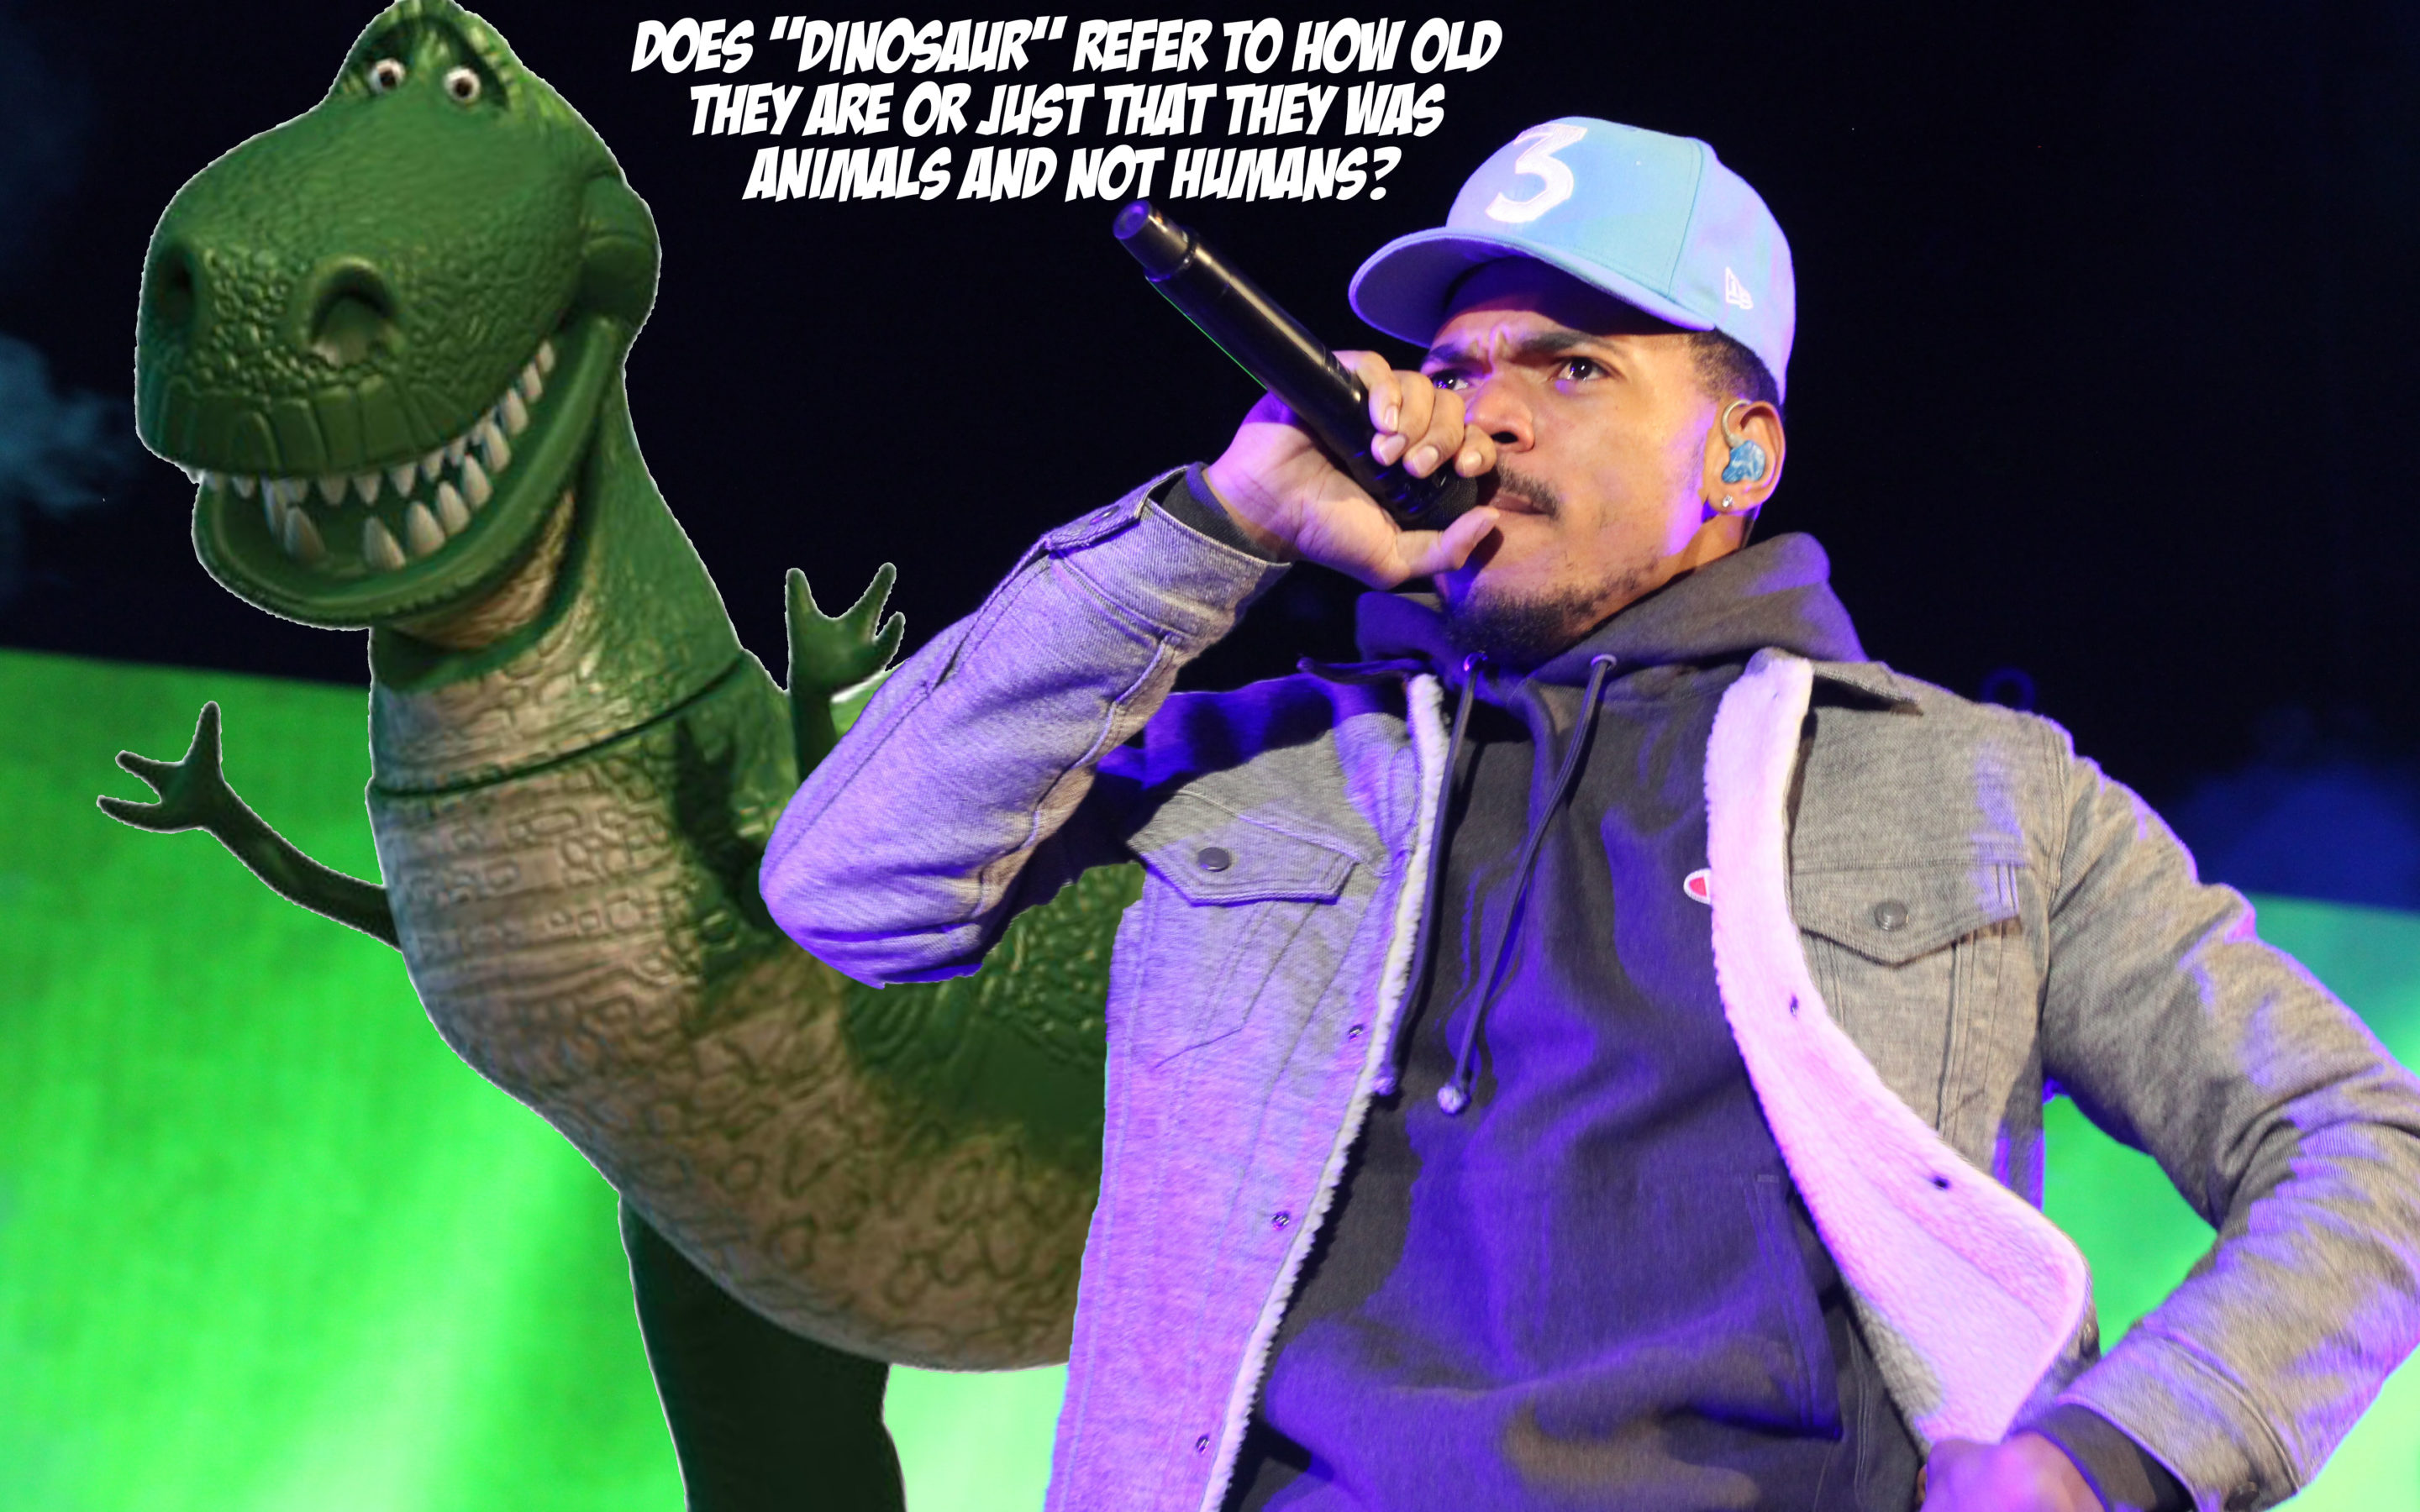 *Facepalm… Chance the Rapper Wants to Know If Dinosaurs Are Called 'Dinosaurs' Just Because They're Old